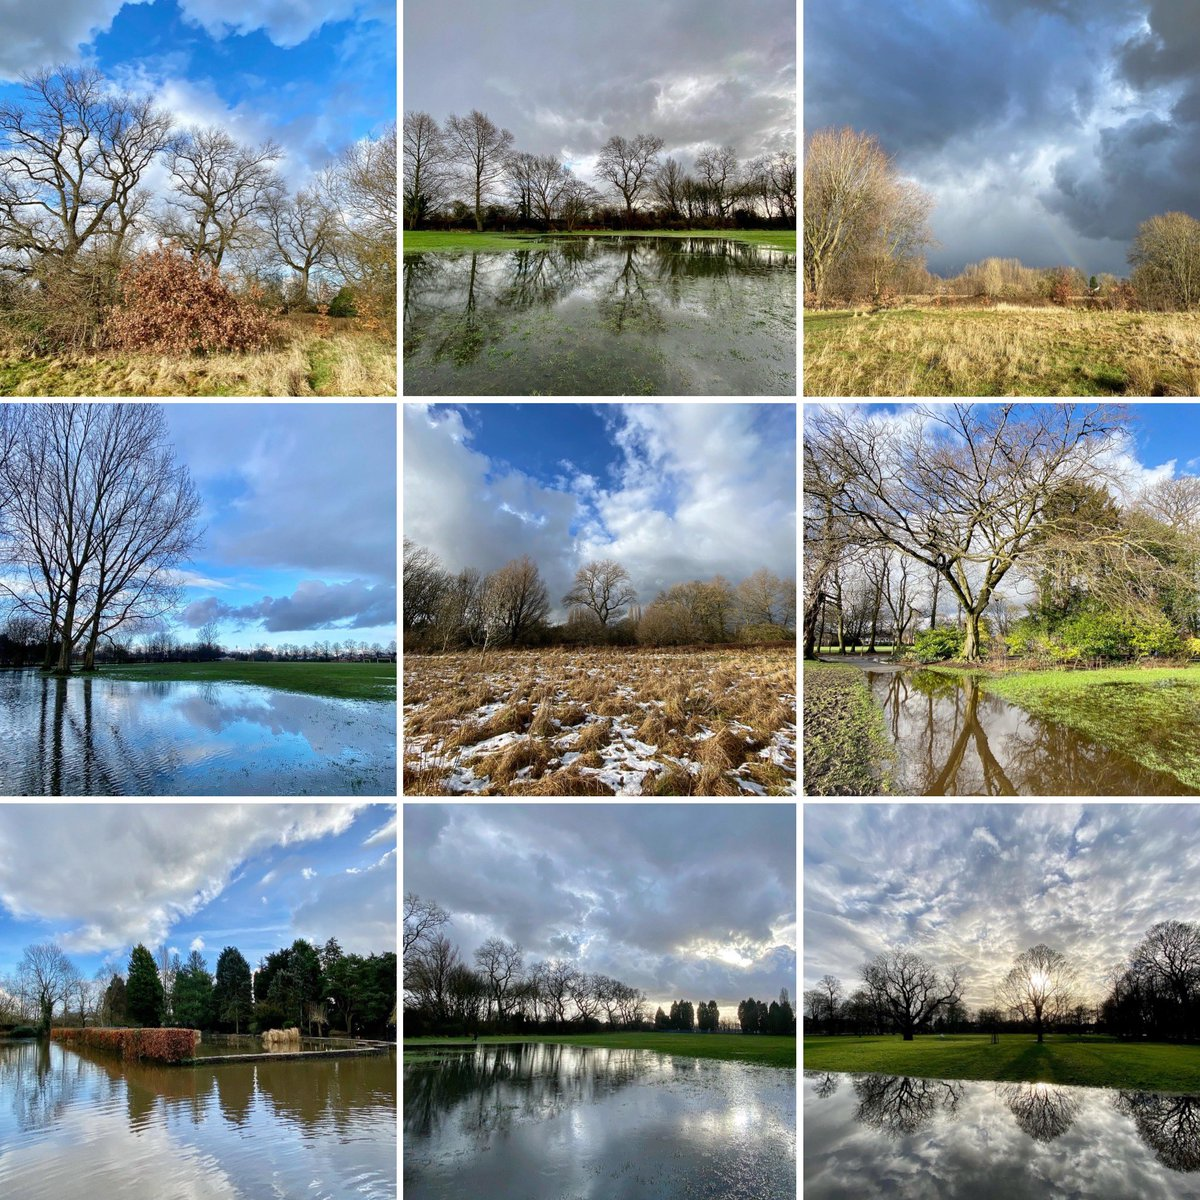 all #weather in one day today in @ryebankfields & @Longford_Park snow, sun and rain - #lockdown #exercise   #day18 #lockdown3 #wildlockdown #flooding #everyoneneedsnature #mindfulness #natureconnection #nature #therapy #outdoors #naturephotography #wellbeing #selfcare #staysafe